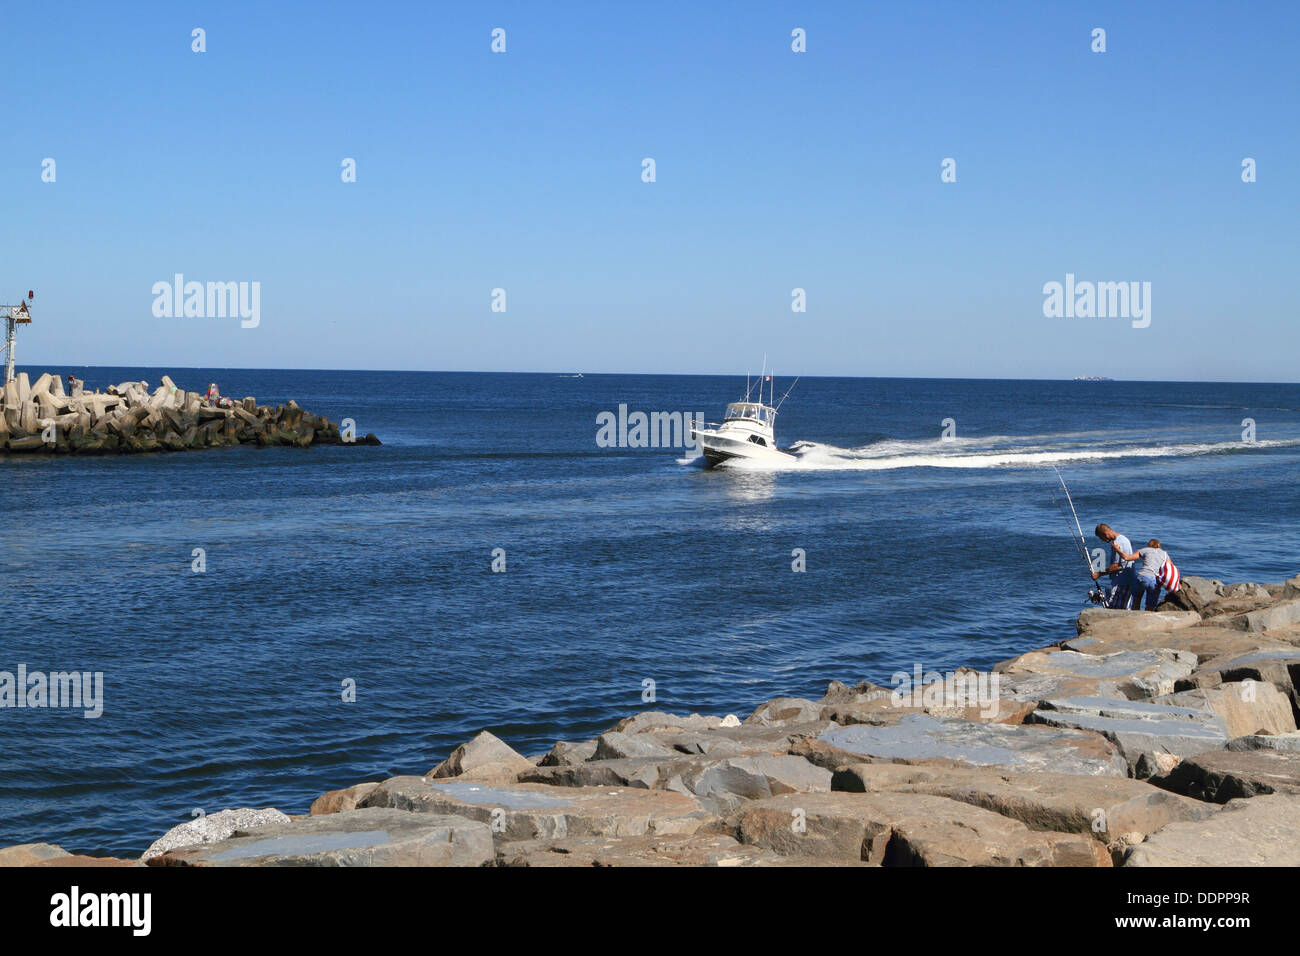 a fishing boat entering the manasquan inlet from the